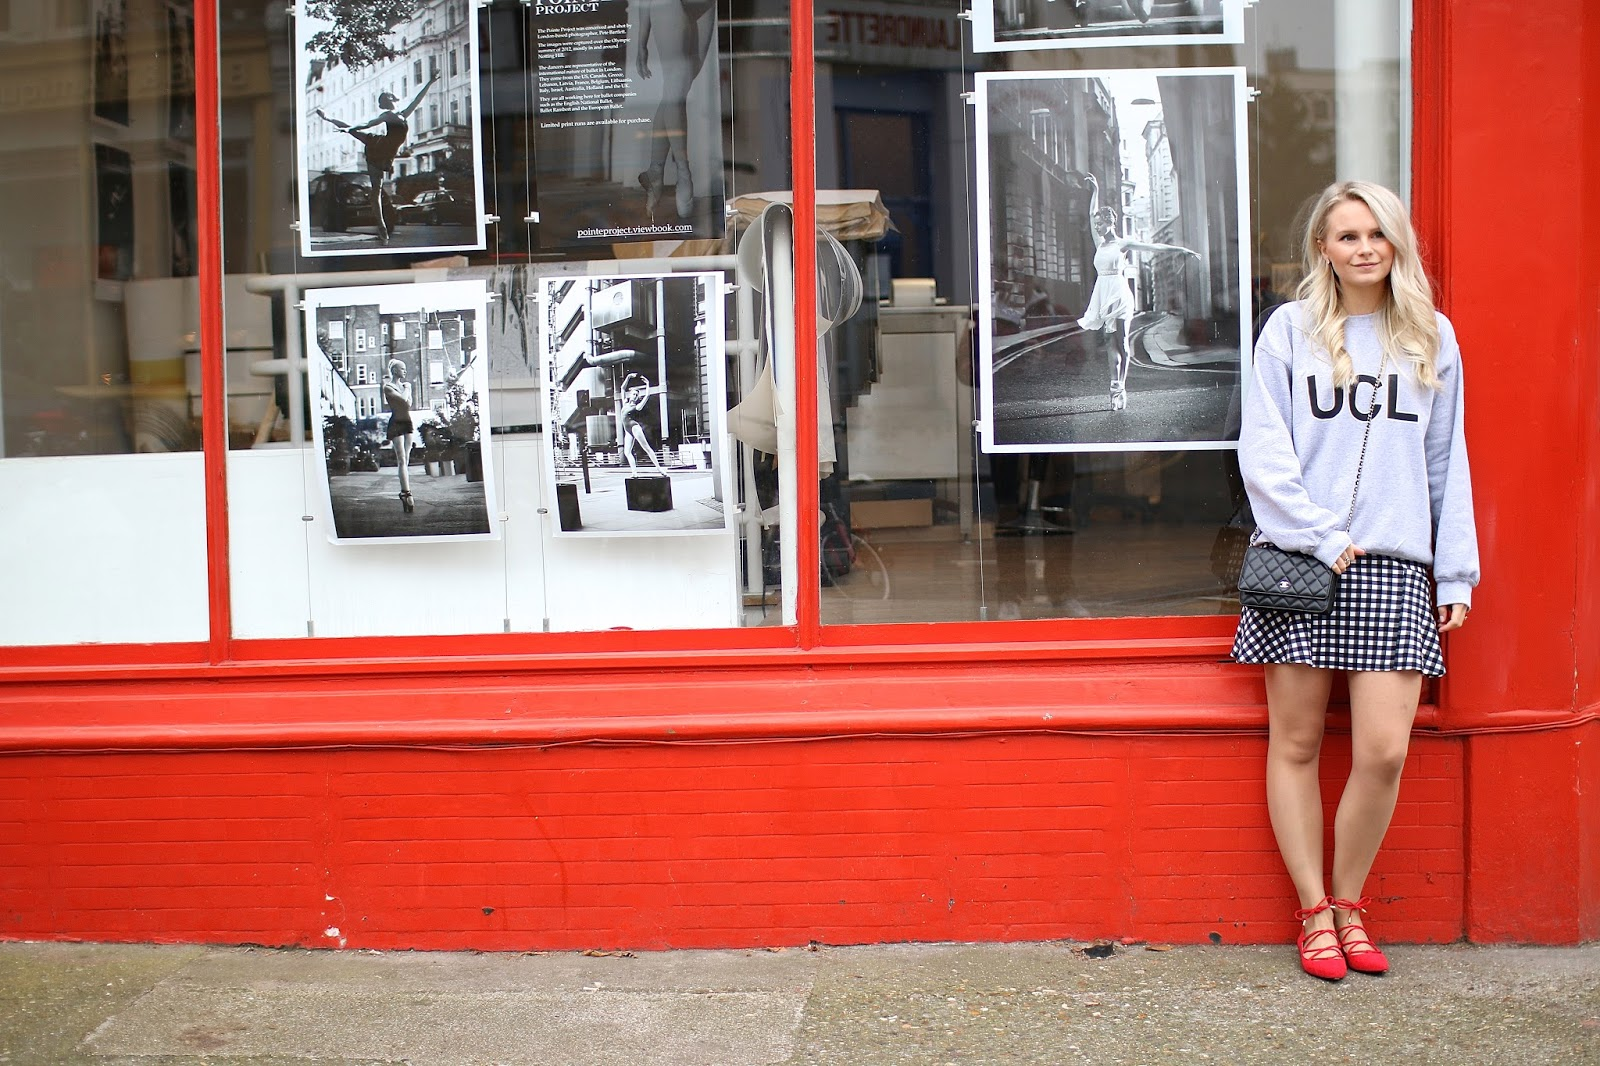 red wall and red shoes in london, matchy matchy outfit